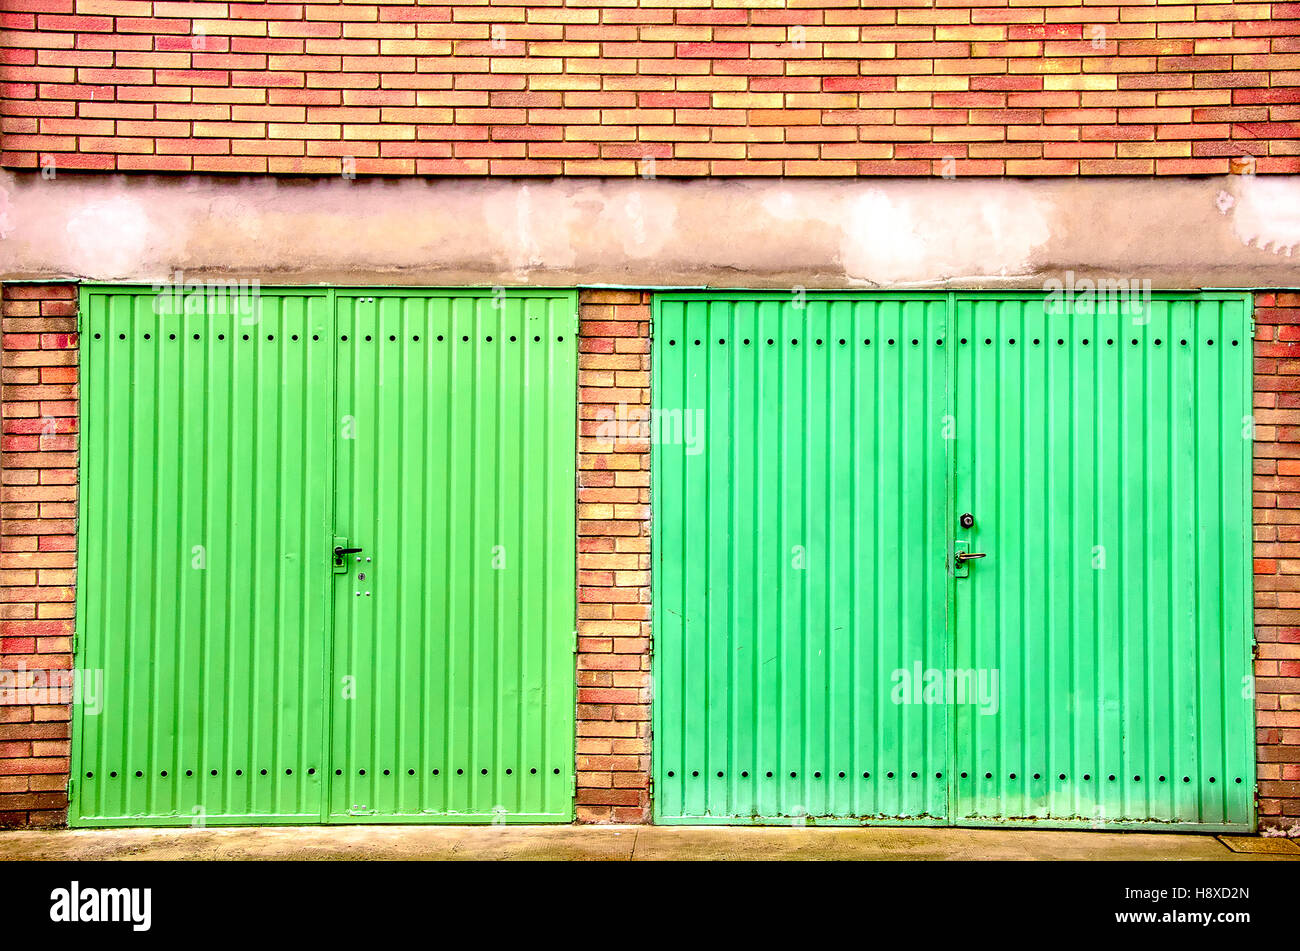 Red Brick Shelter Stock Photos Red Brick Shelter Stock Images Alamy